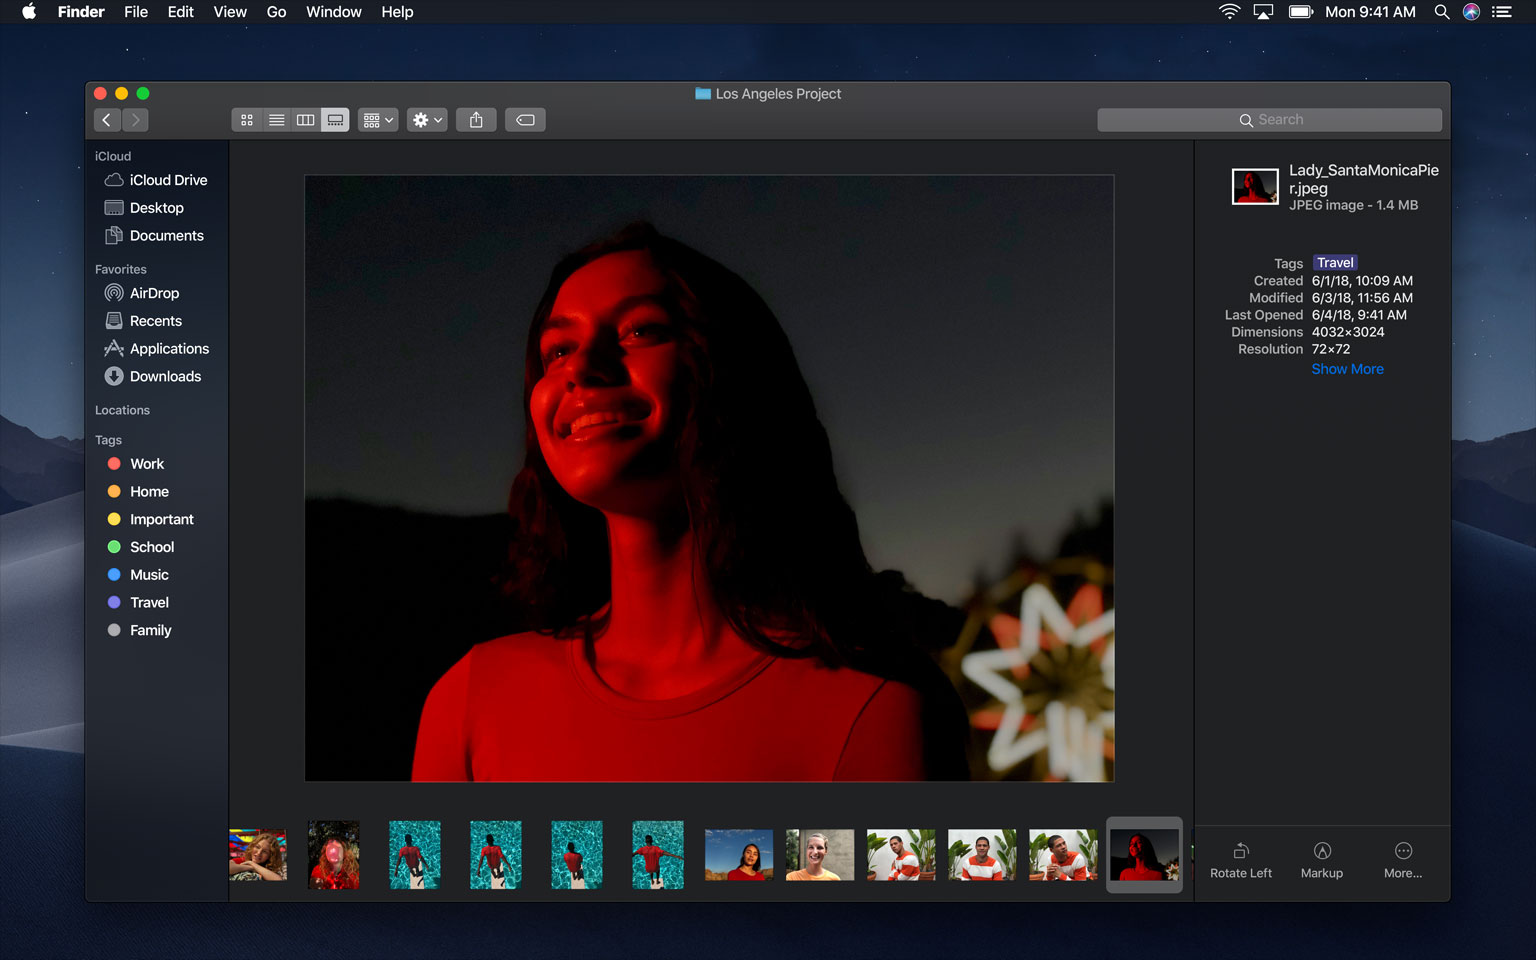 The Finder on macOS Mojave brings a new Gallery View that lets you view image metadata and work with your files visually